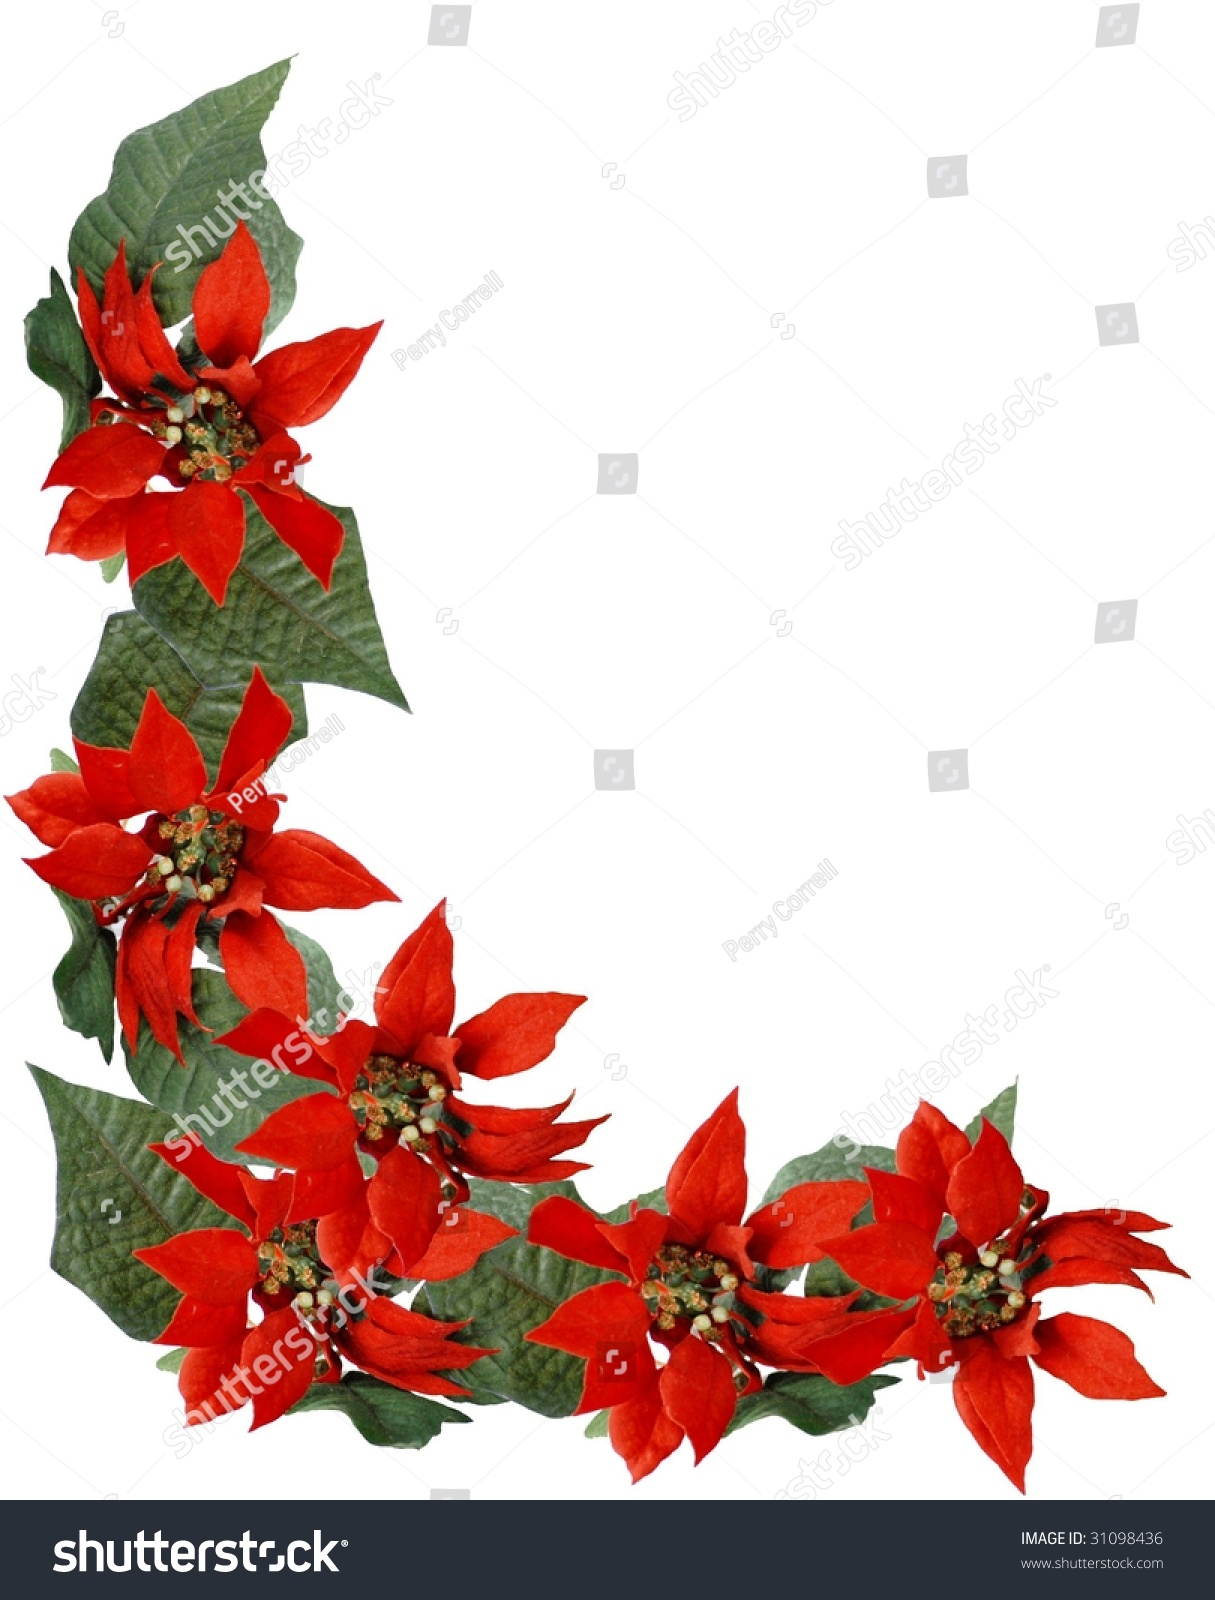 Christmas Holiday Border Frame Of Red Poinsettia Flowers And Green Leaves Isolated On White Vertical